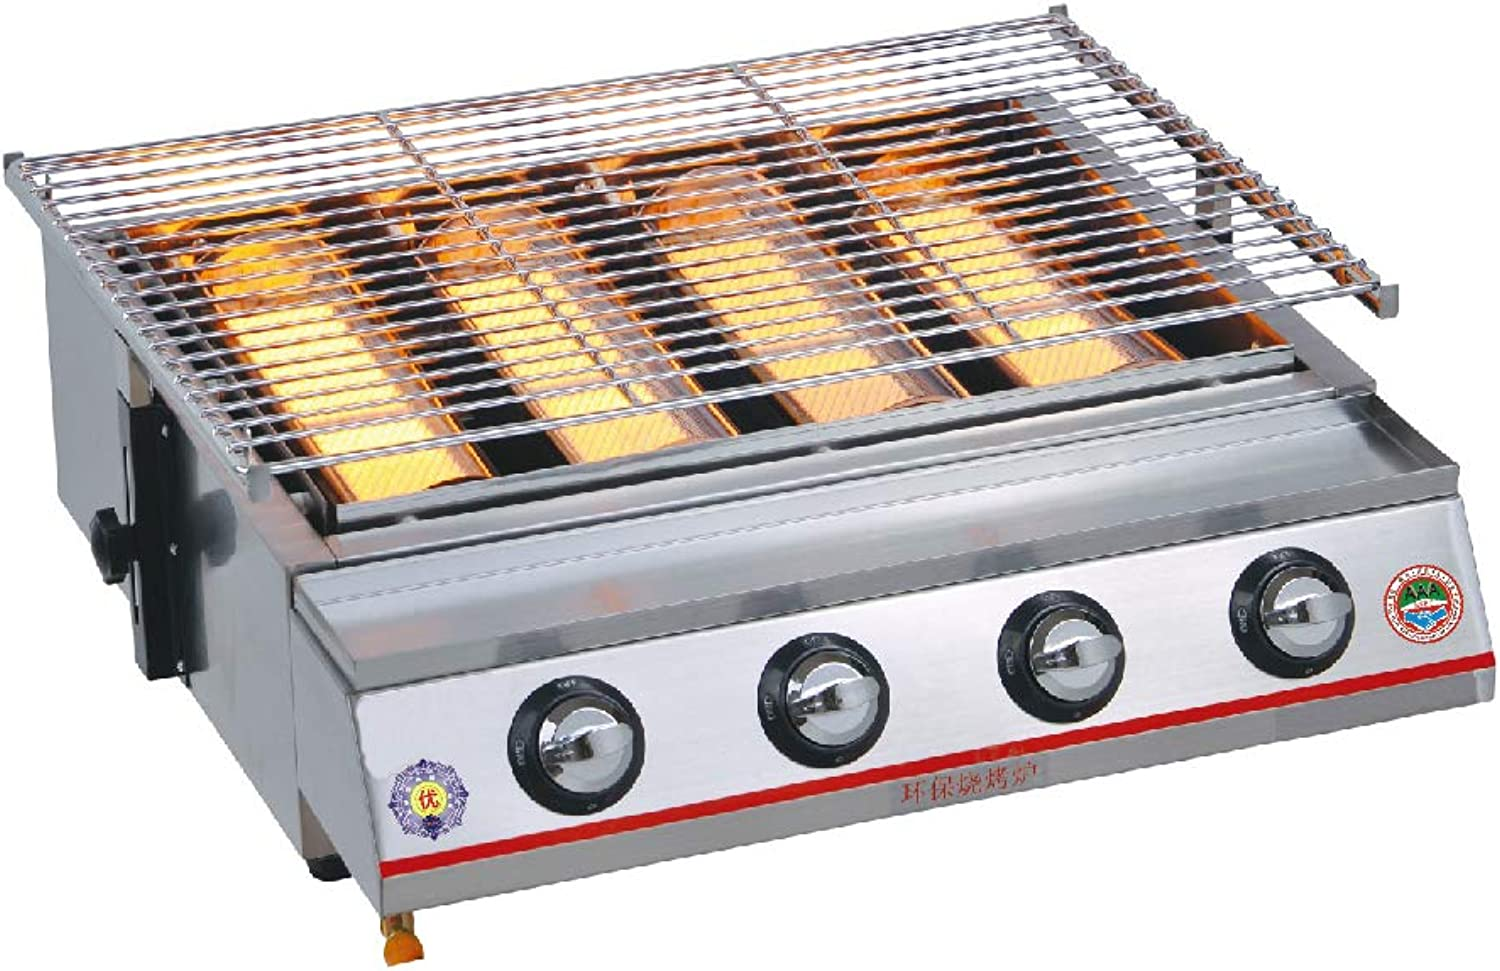 BBQ Grill Gas Stainless Steel Grill 4 Burners Portable Barbecue LPG Gas Grill for Outdoor Picnic Infrared Adjustable Height Net (Sliver, Stainless Steel)